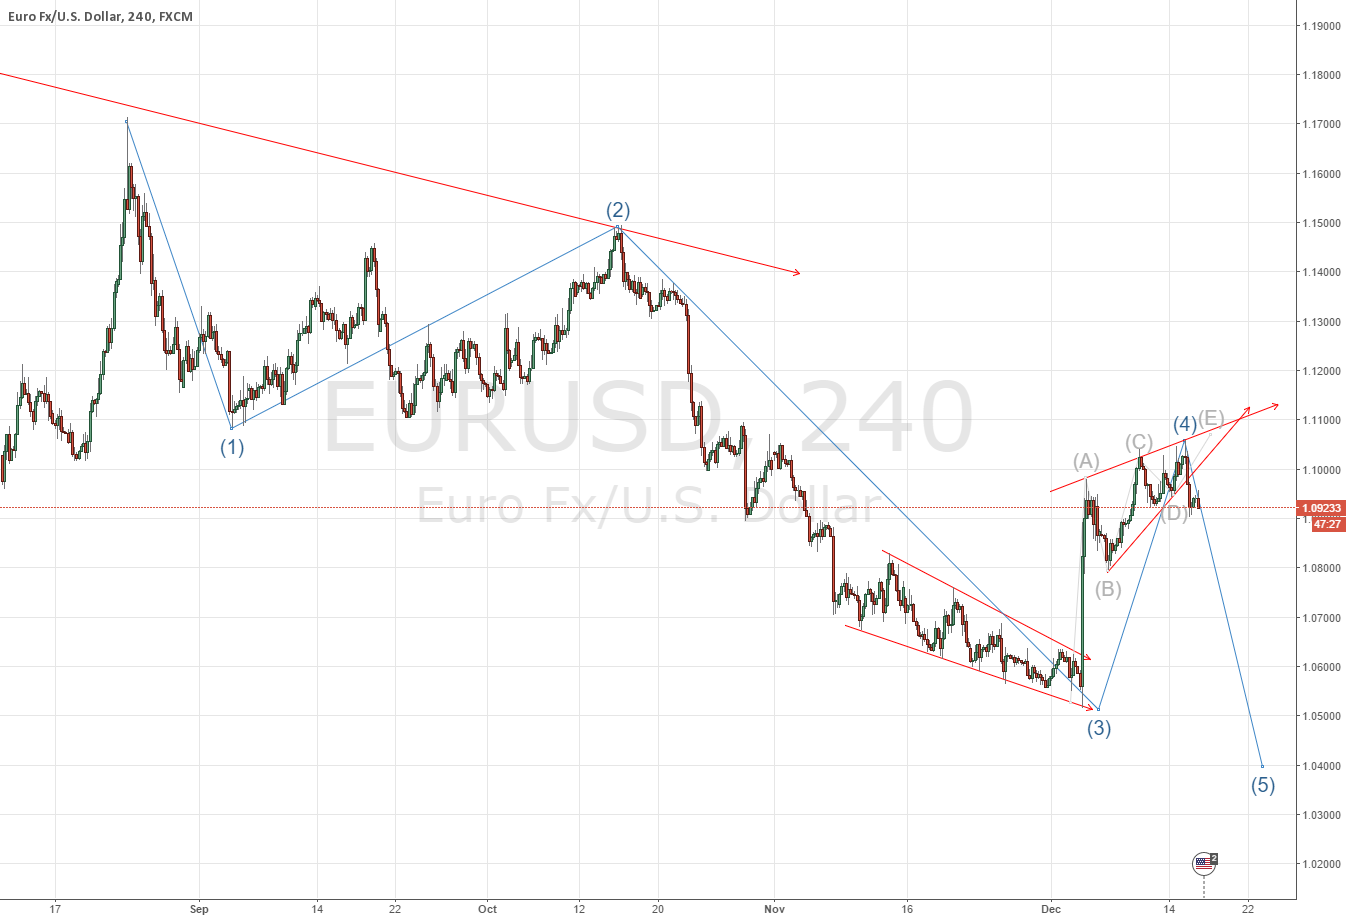 My wave count on EURUSD